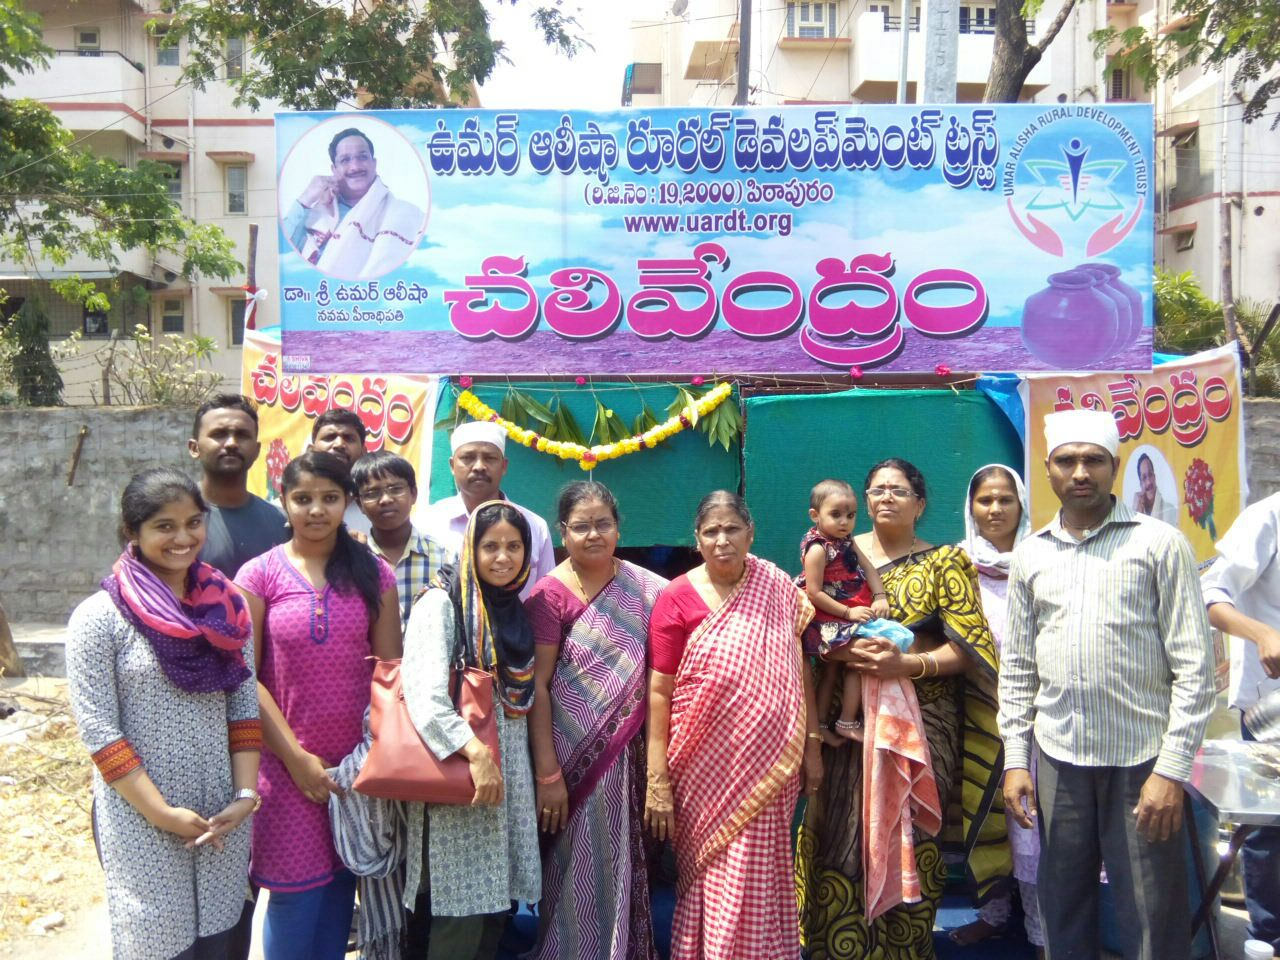 Chalivendram (Water Kiosk) at various places in Hyderabad ...